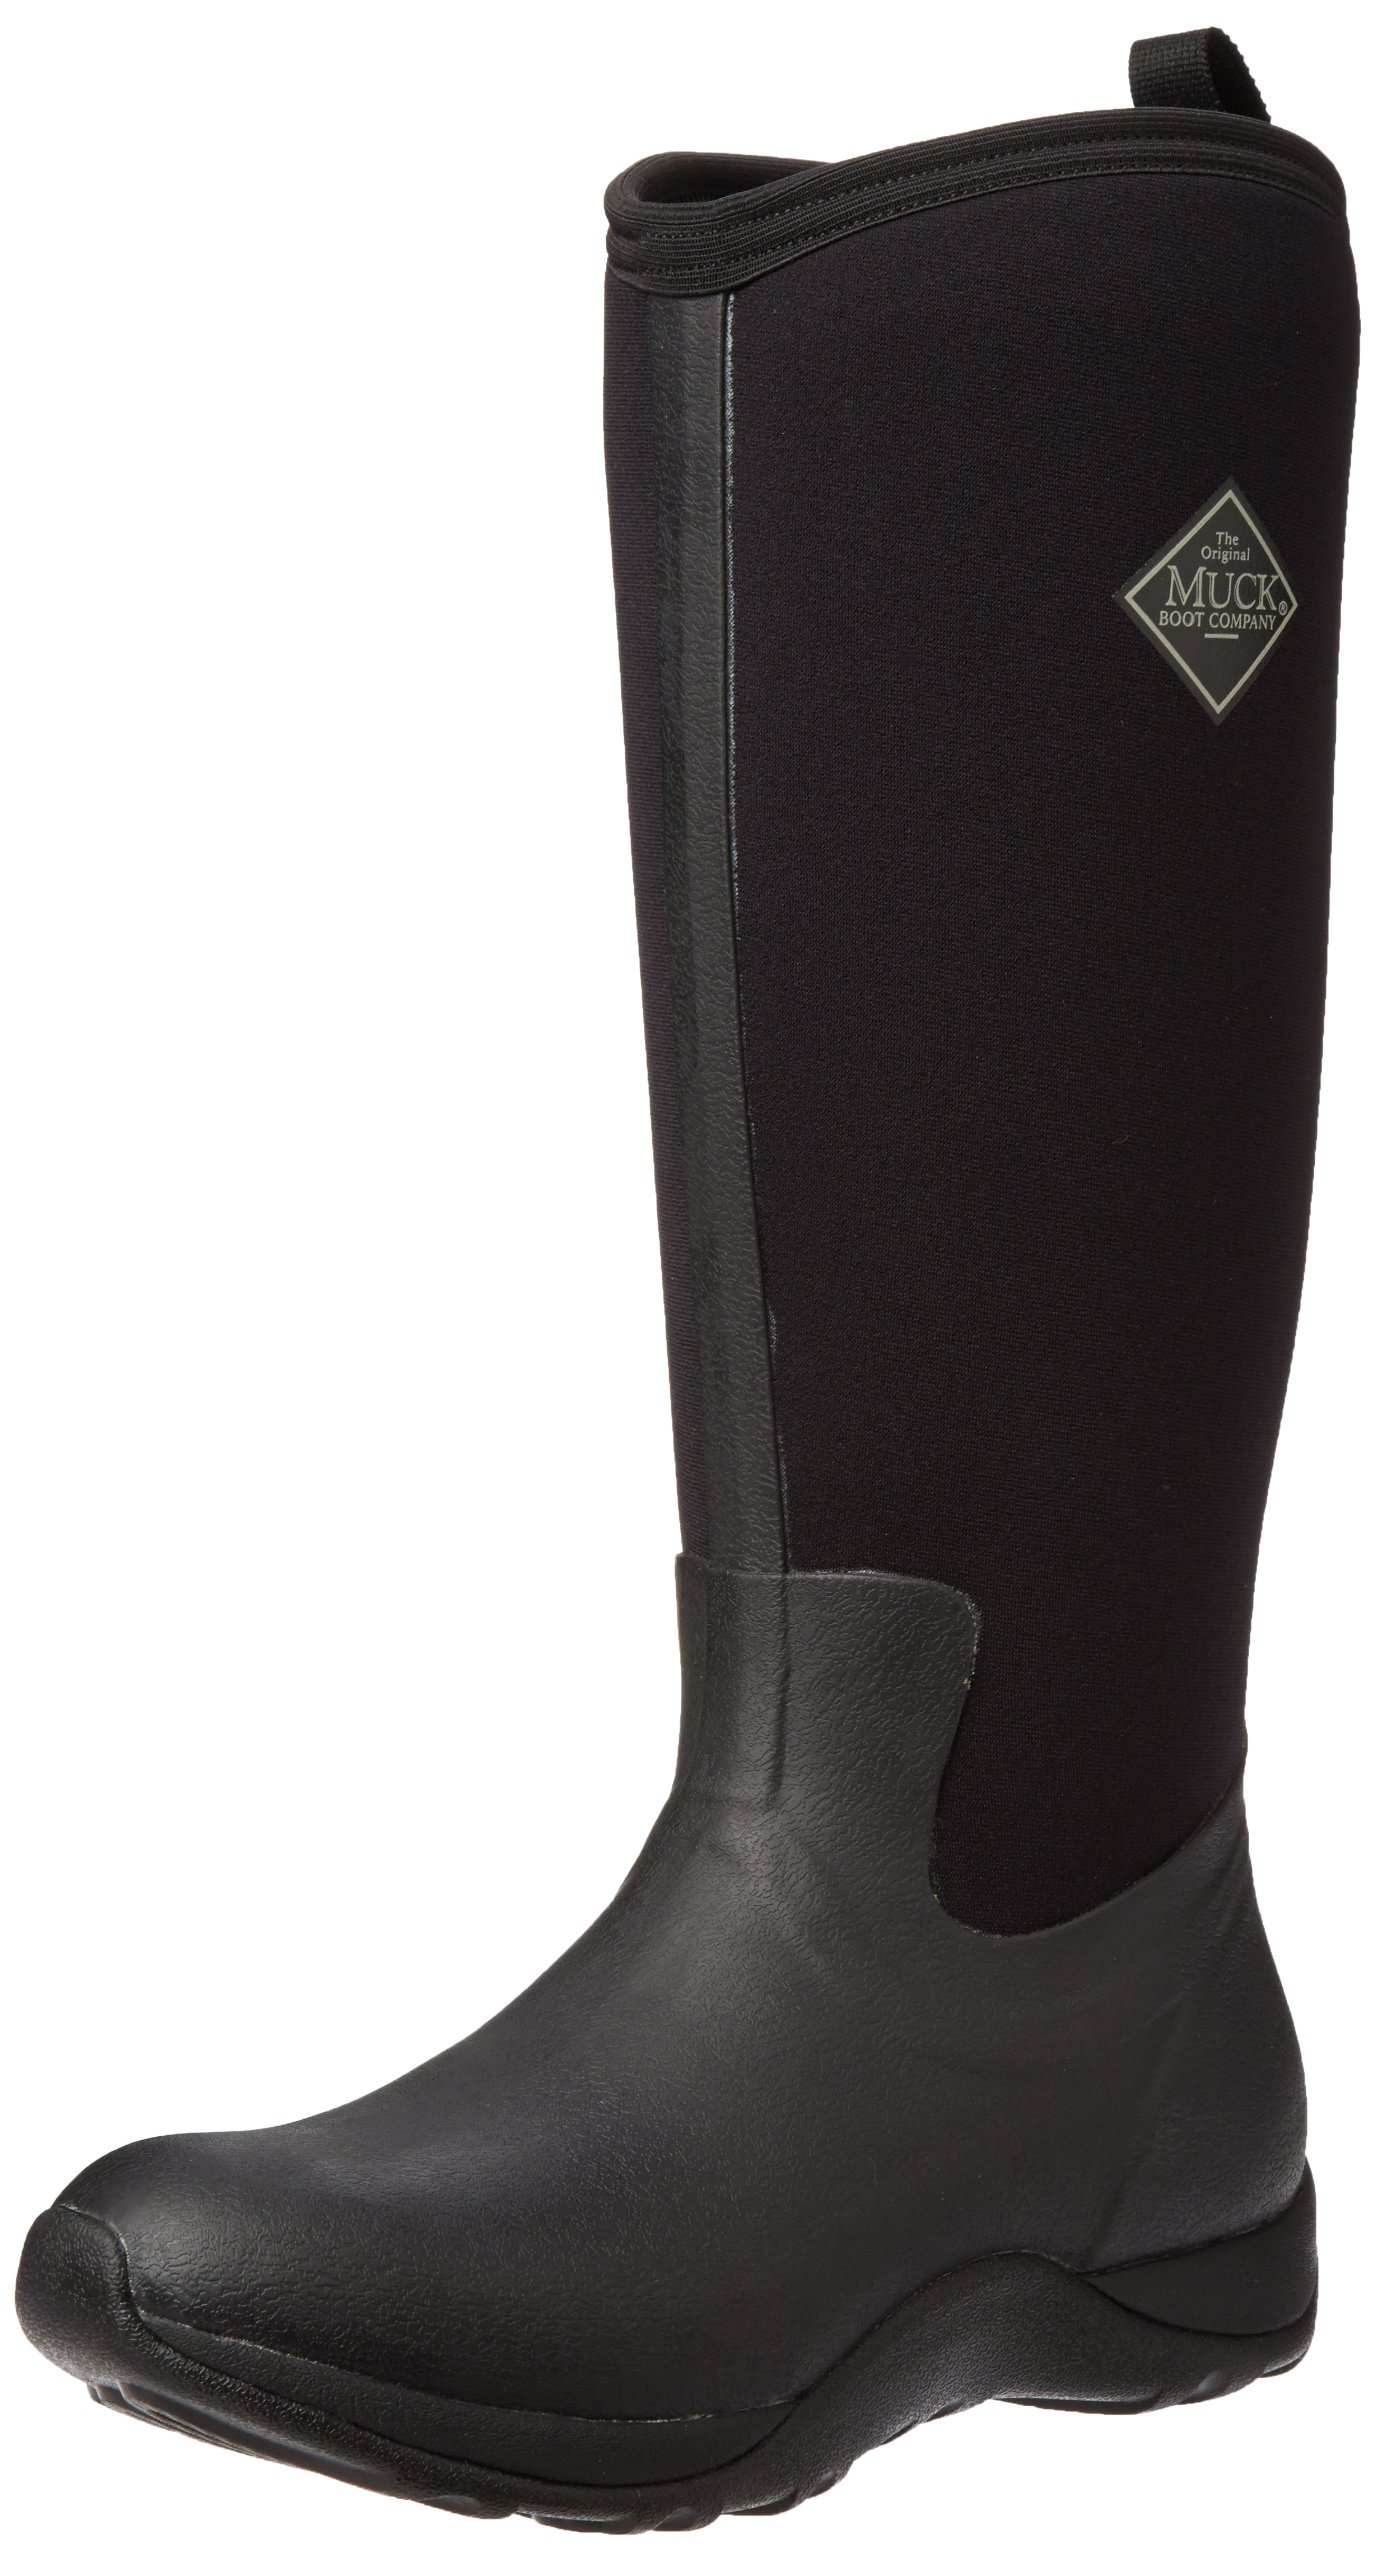 Muck Arctic Adventure Tall Rubber Women's Winter Boots, 8 M US, Black/Black by Muck Boot